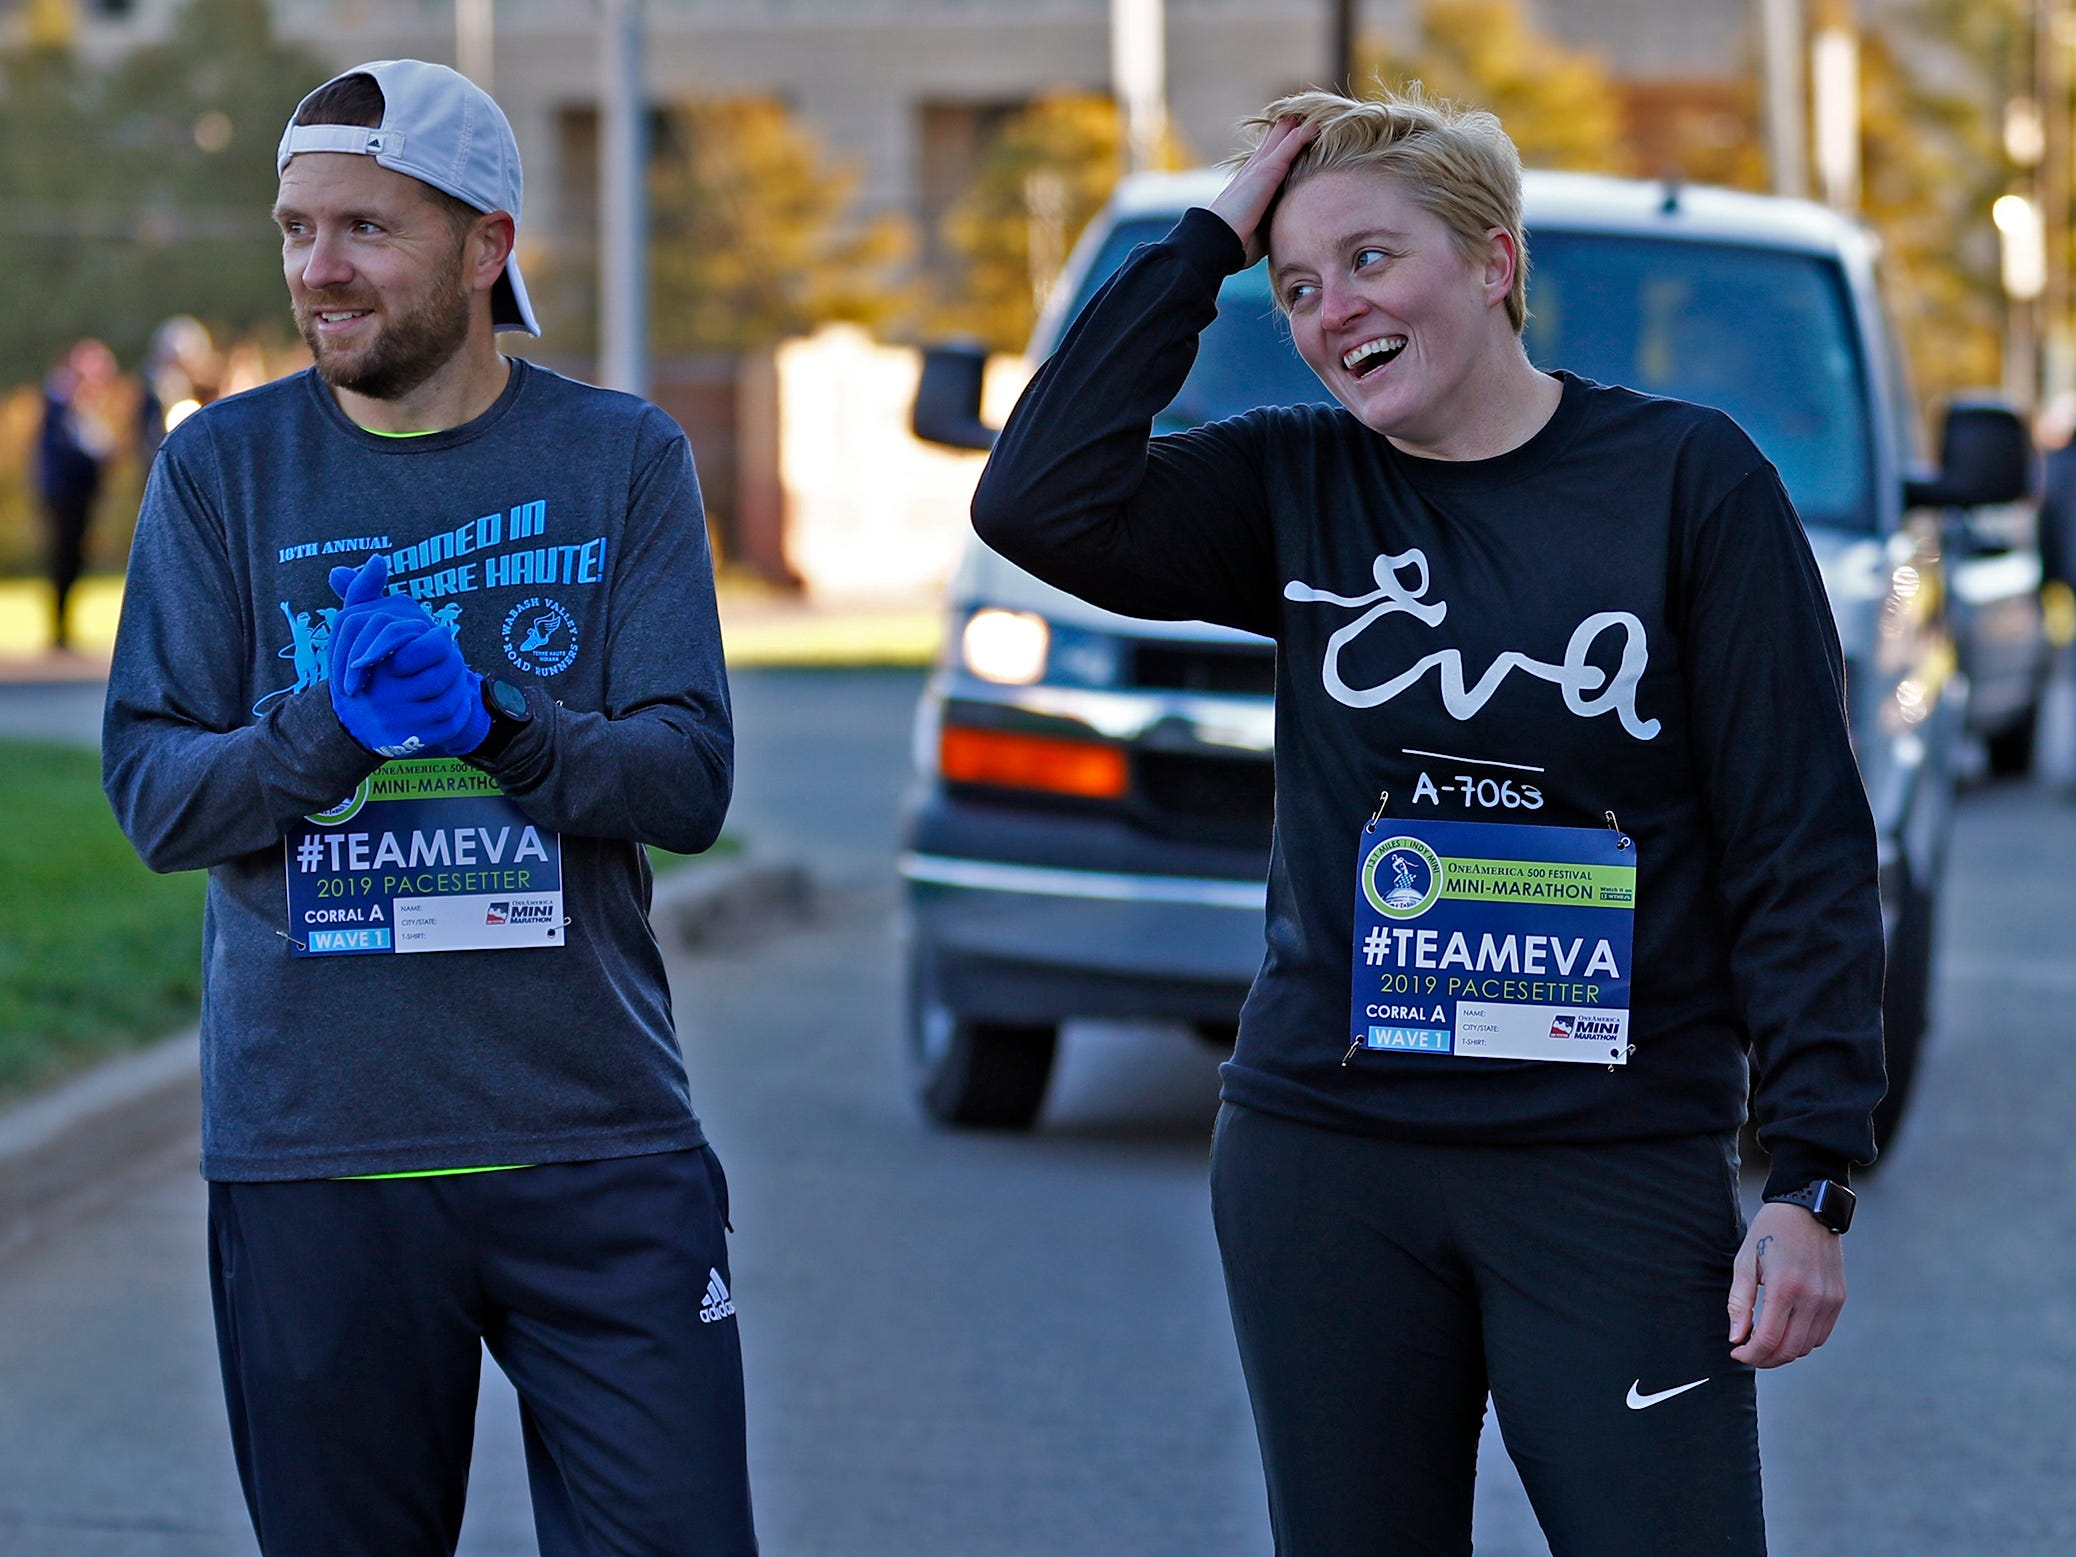 Brad Chaney, left, and Mika Brown wait to run the first leg, Wednesday, Oct. 24, 2018, of the pace-setting run for the 2019 OneAmerica 500 Festival Mini-Marathon.  The 500 Festival will donate $1 to the CANDLES Holocaust Museum in Terre Haute for every mini-marathon participant who finishes the 2019 race in a better time than Team Eva.  Holocaust survivor Eva Kor joined the fun at the Indianapolis Motor Speedway's Yard of Bricks and ran the very last part of the race.